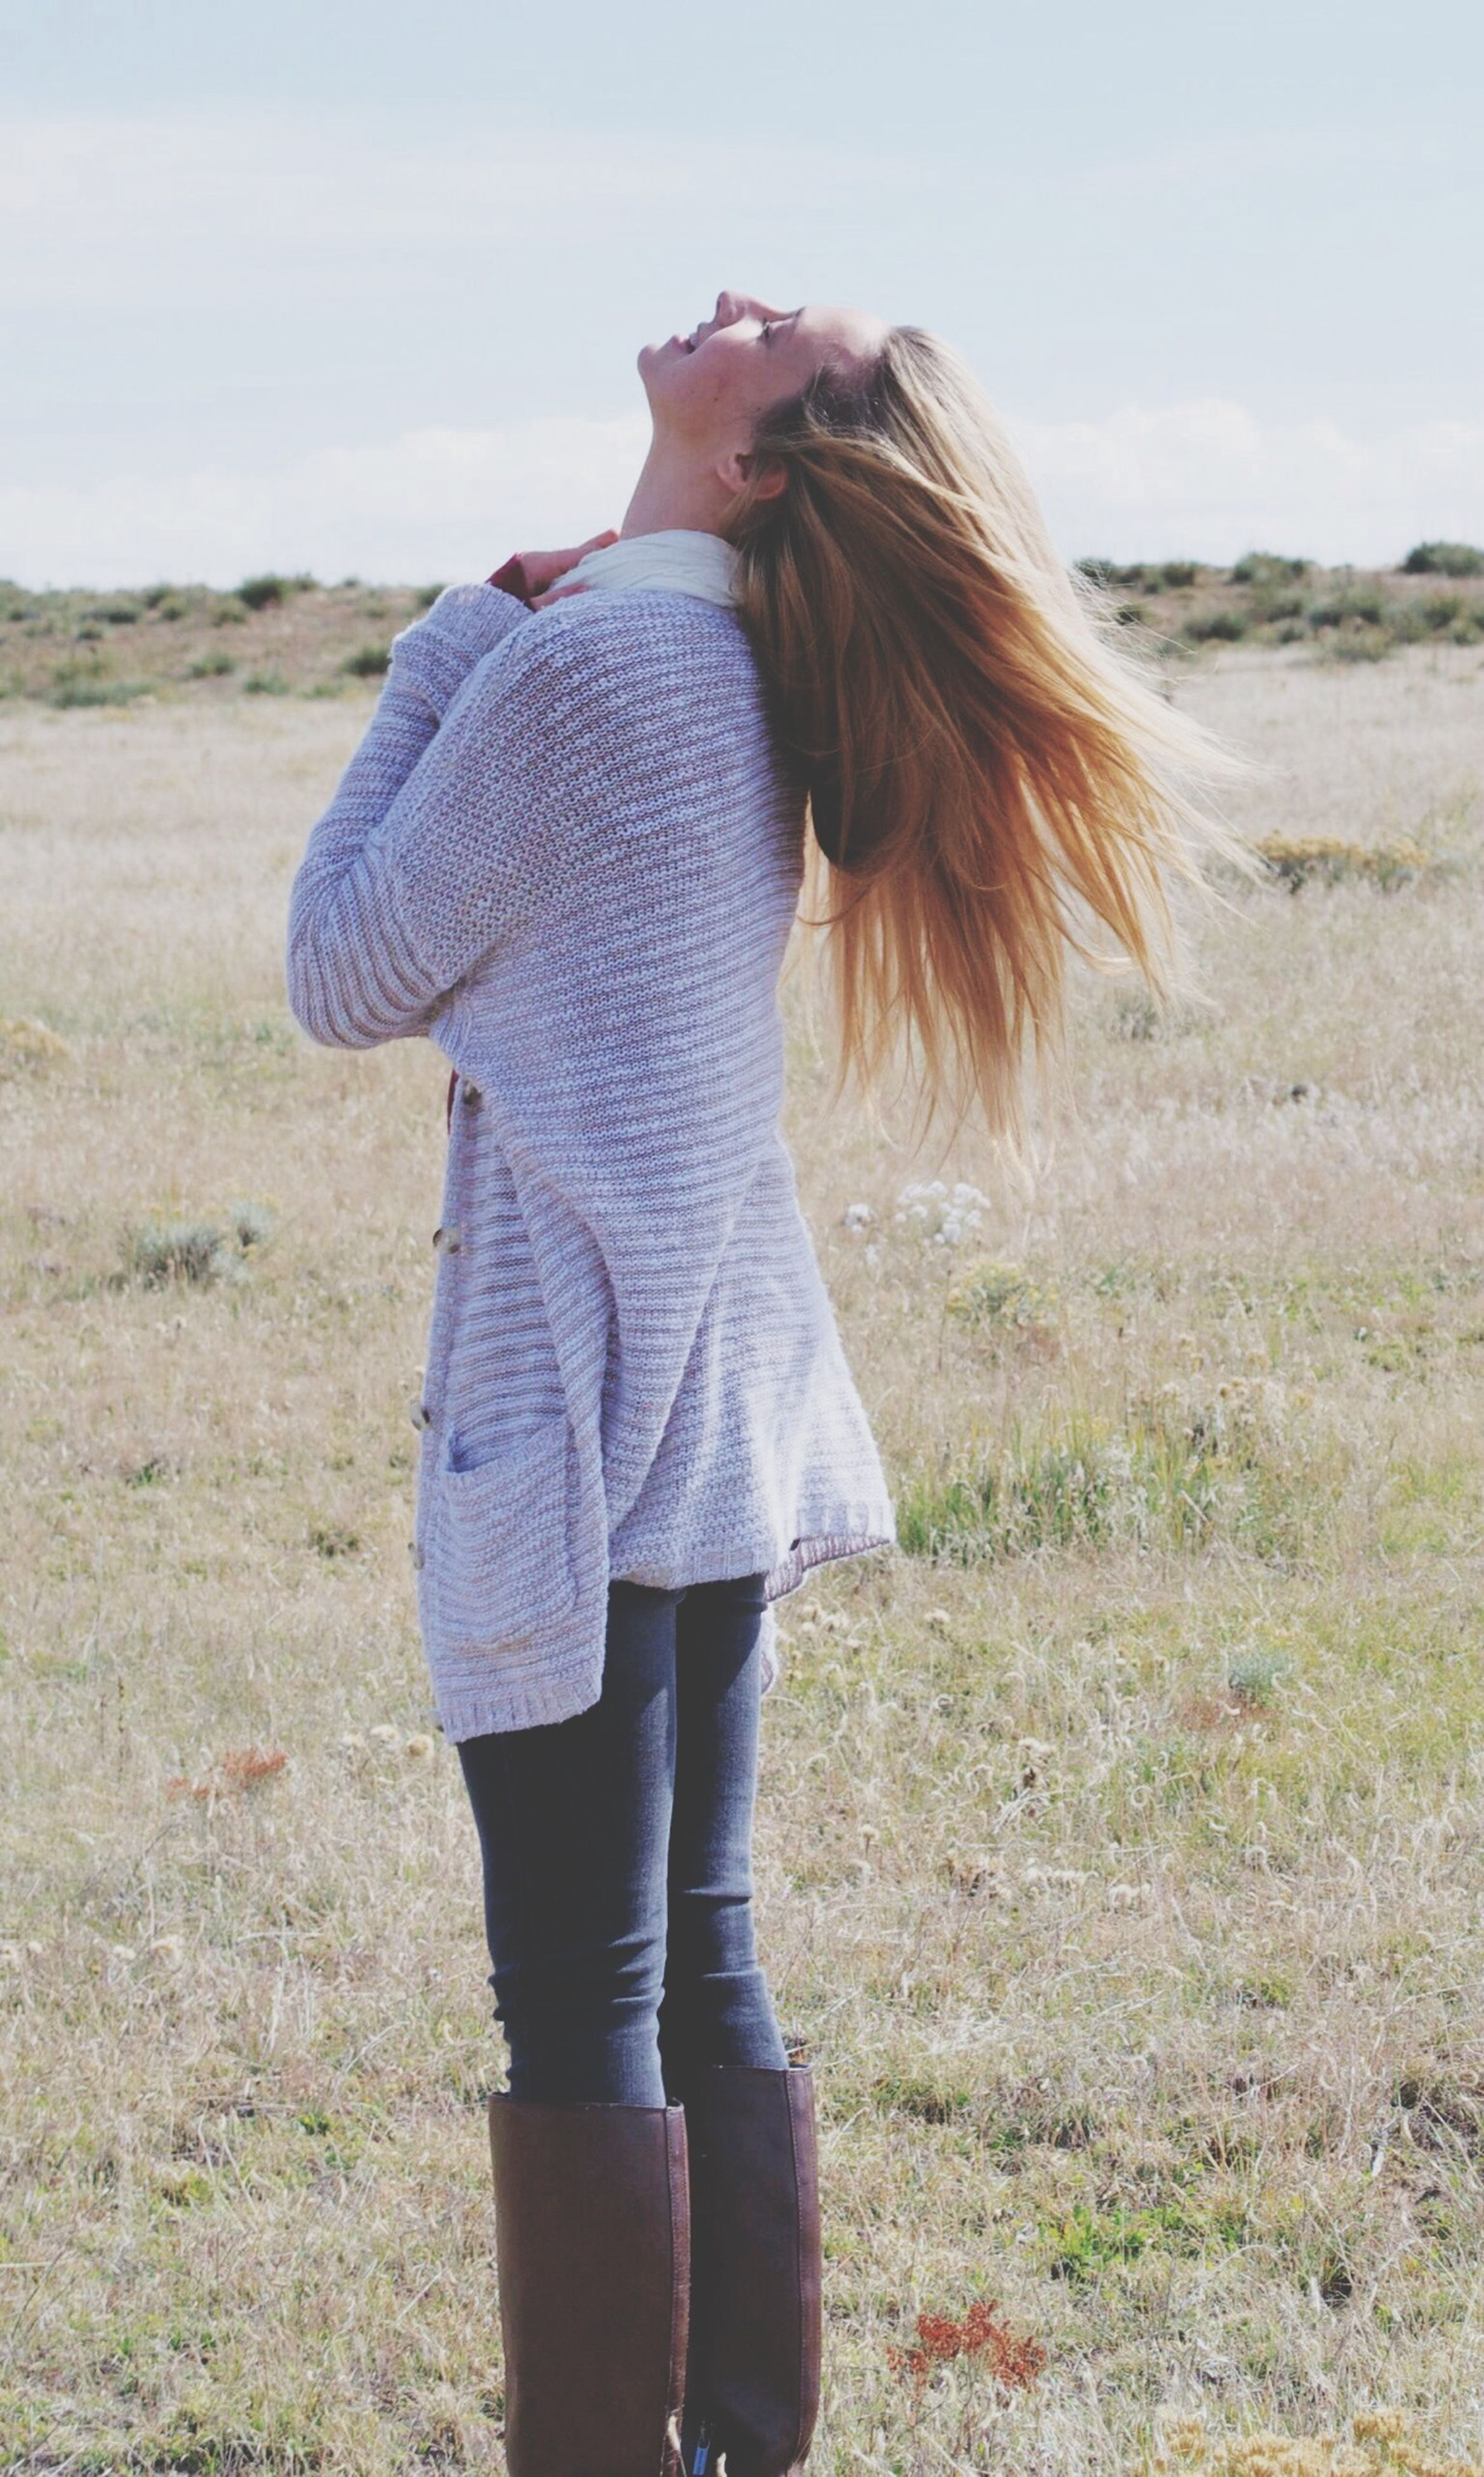 rear view, field, casual clothing, standing, grass, lifestyles, leisure activity, landscape, full length, sky, long hair, three quarter length, nature, focus on foreground, day, side view, person, outdoors